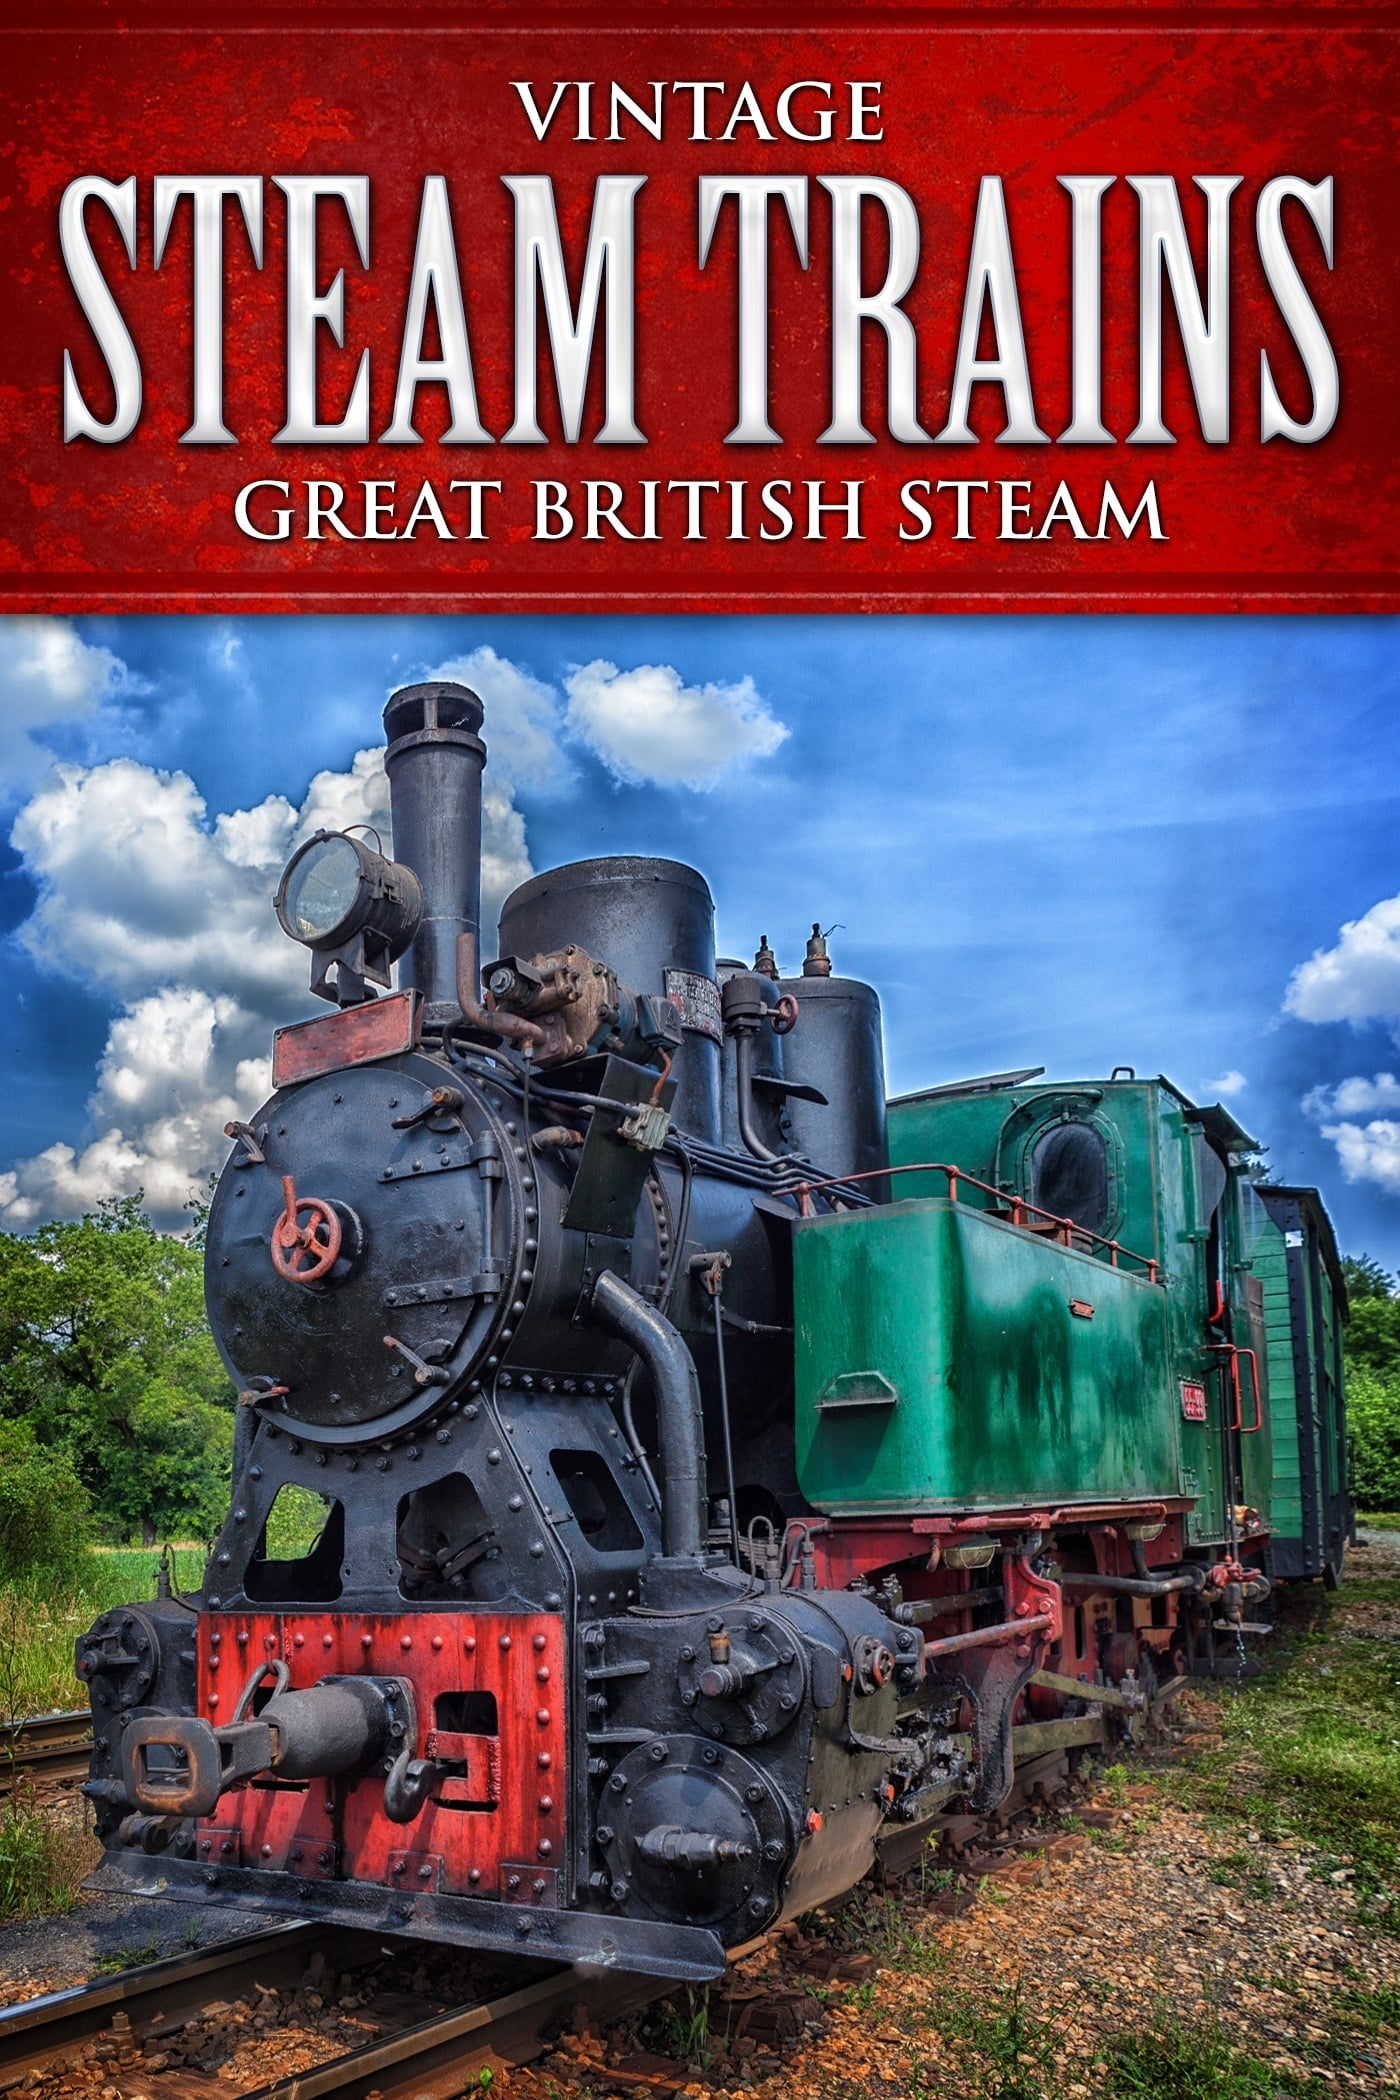 Vintage Steam Trains: Great British Steam on FREECABLE TV